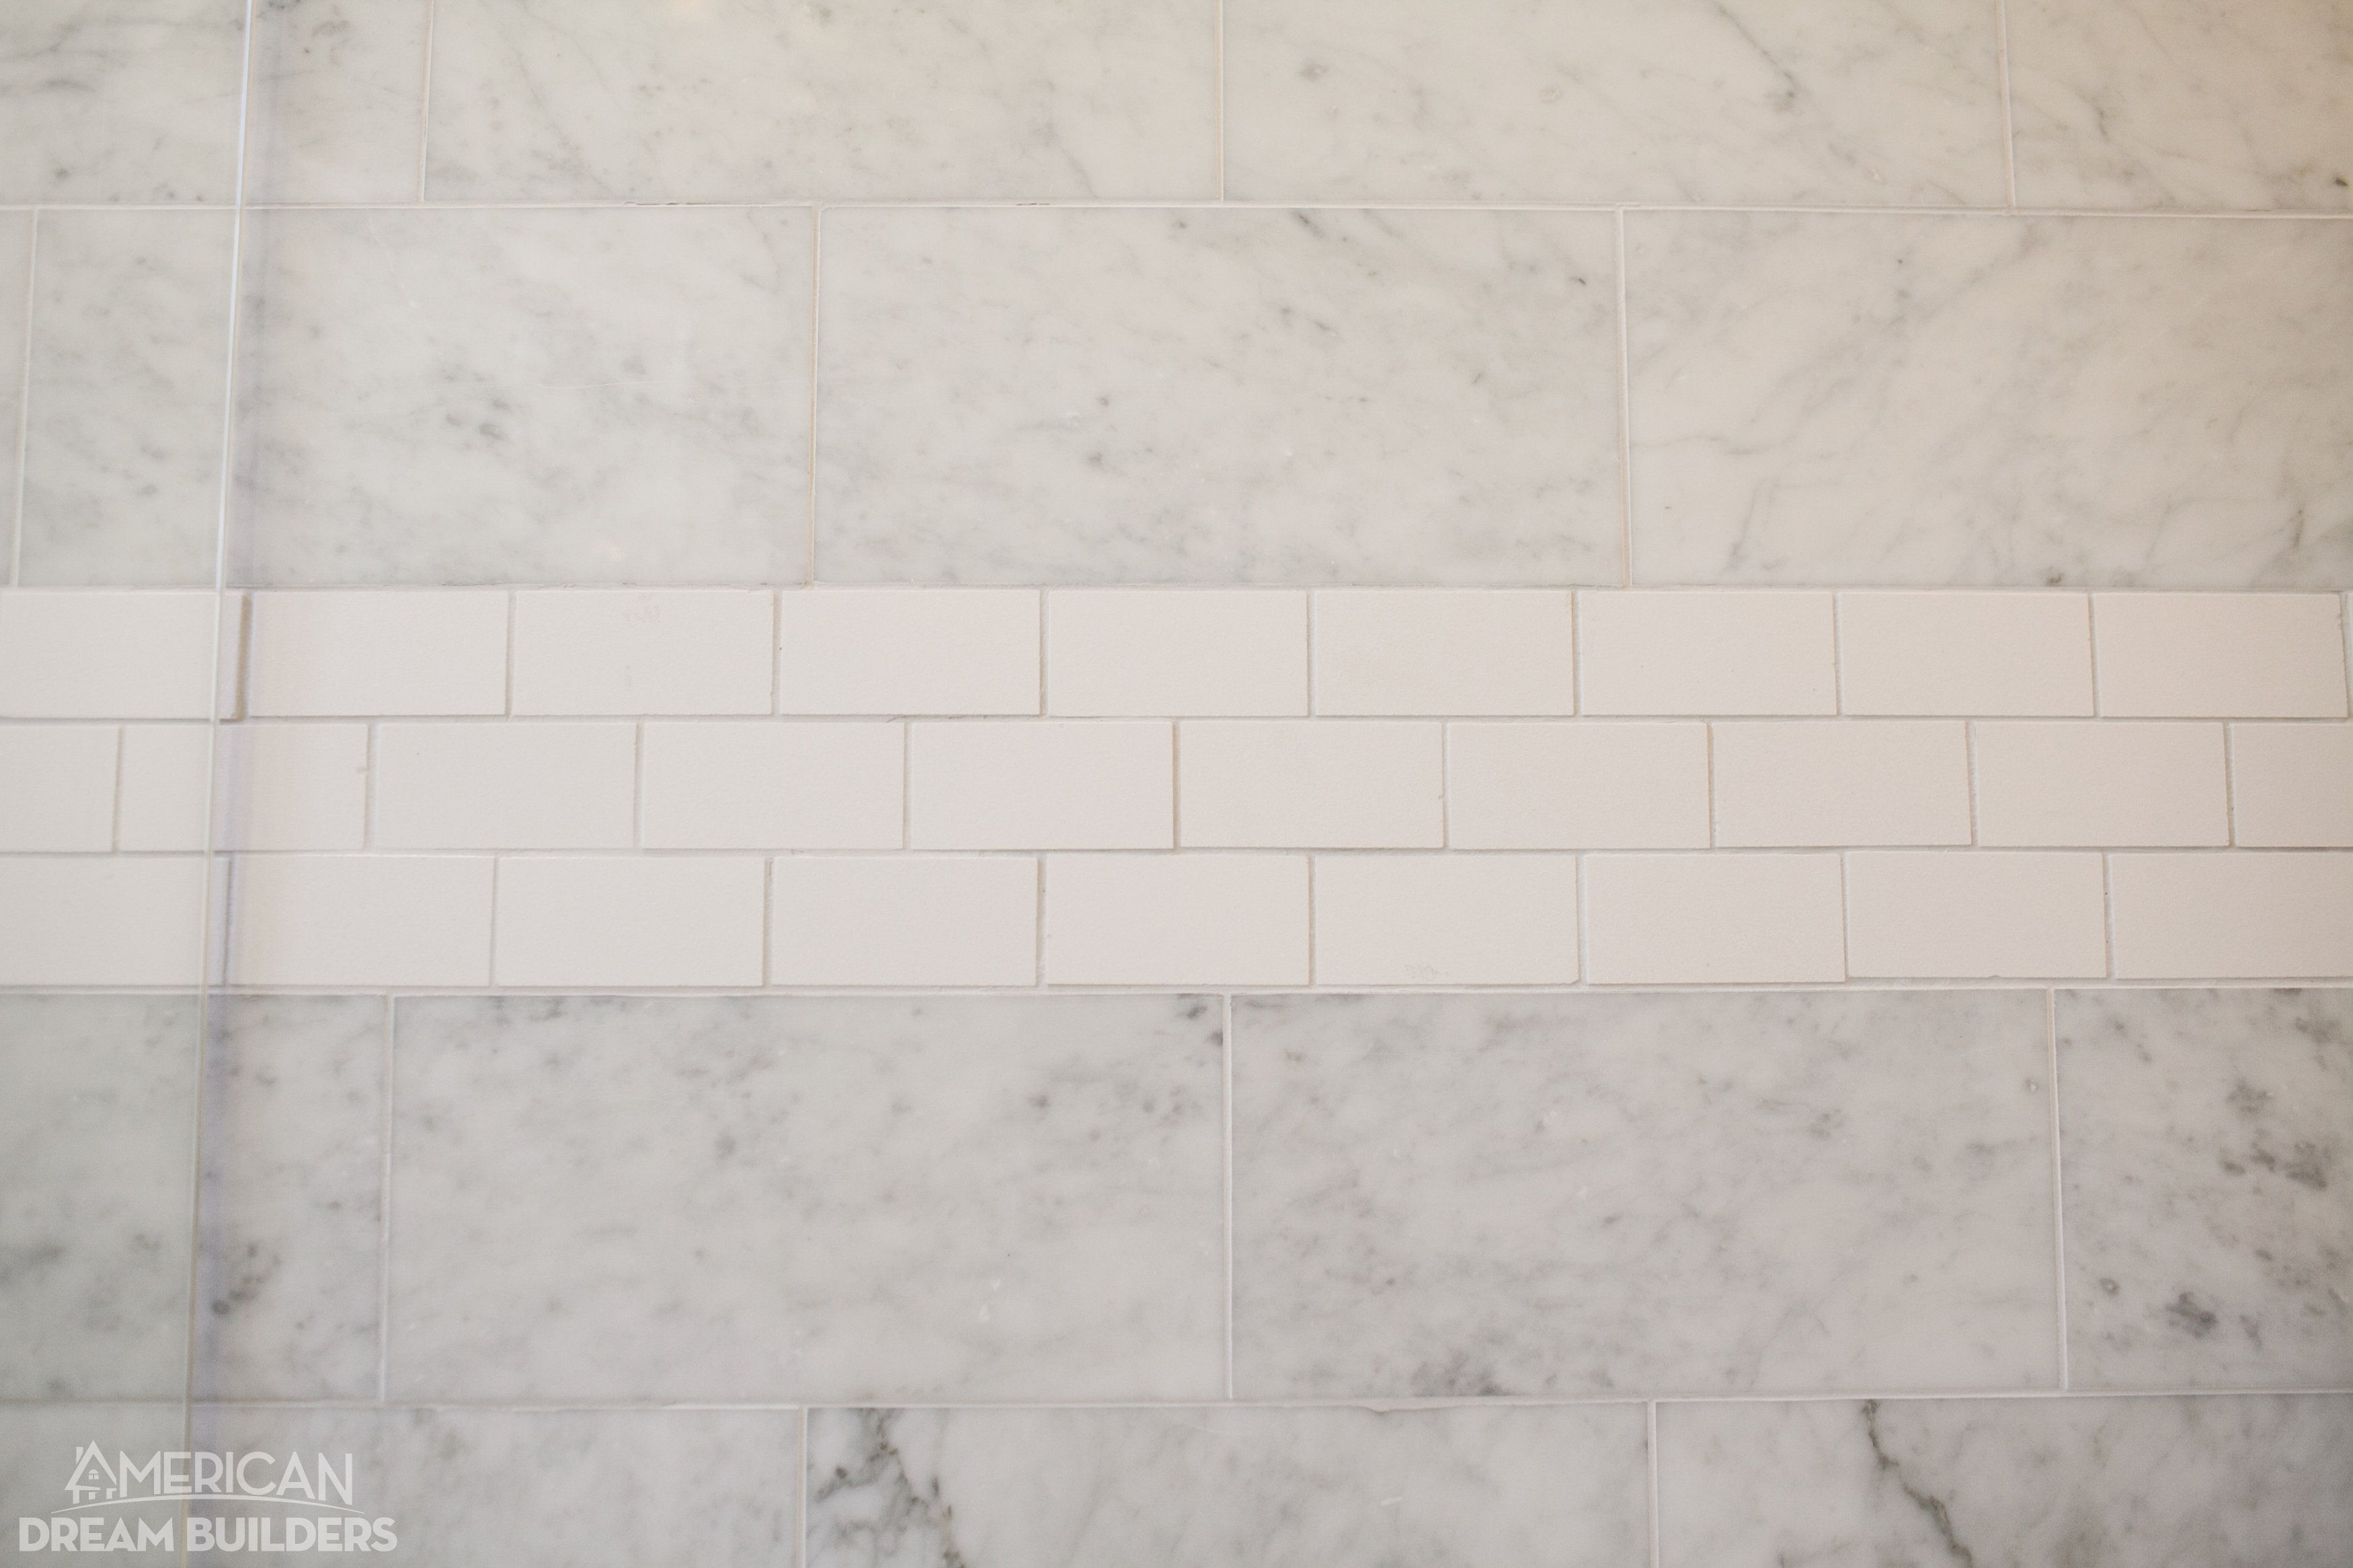 Wall Tile Florentine 10 X 14 Carrara Fl06 With Rittenhouse Square 3 X 6 Artic White 0190 Dreambuilders Daltile Small Bathroom Remodel Upstairs Bathrooms